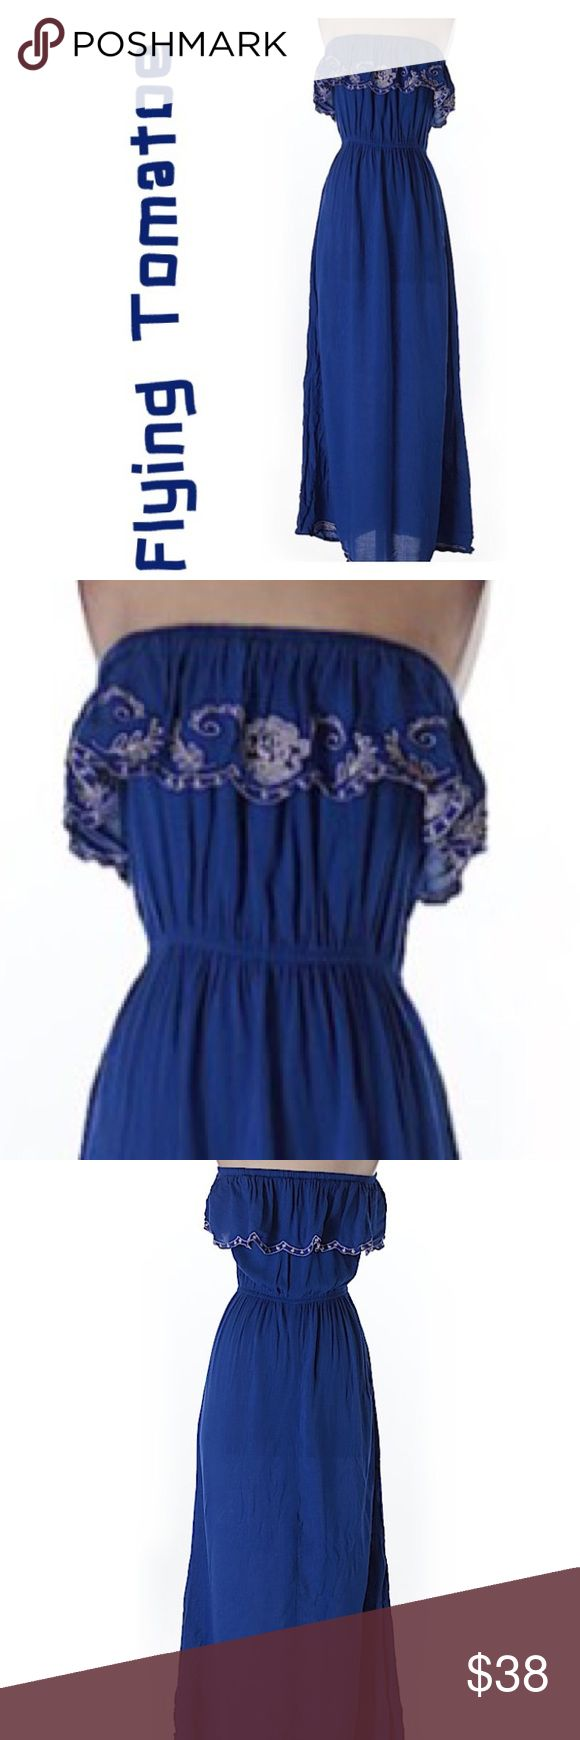 FLYING TOMATOE STRAPLESS MAXI DRESS !! FLYING TOMATOE STRAPLESS MAXI DRESS !! WITH FLOWERS EMBROIDED IN WHITE .  A MUST HAVE !!! SIZE SM Flying Tomato Dresses Maxi